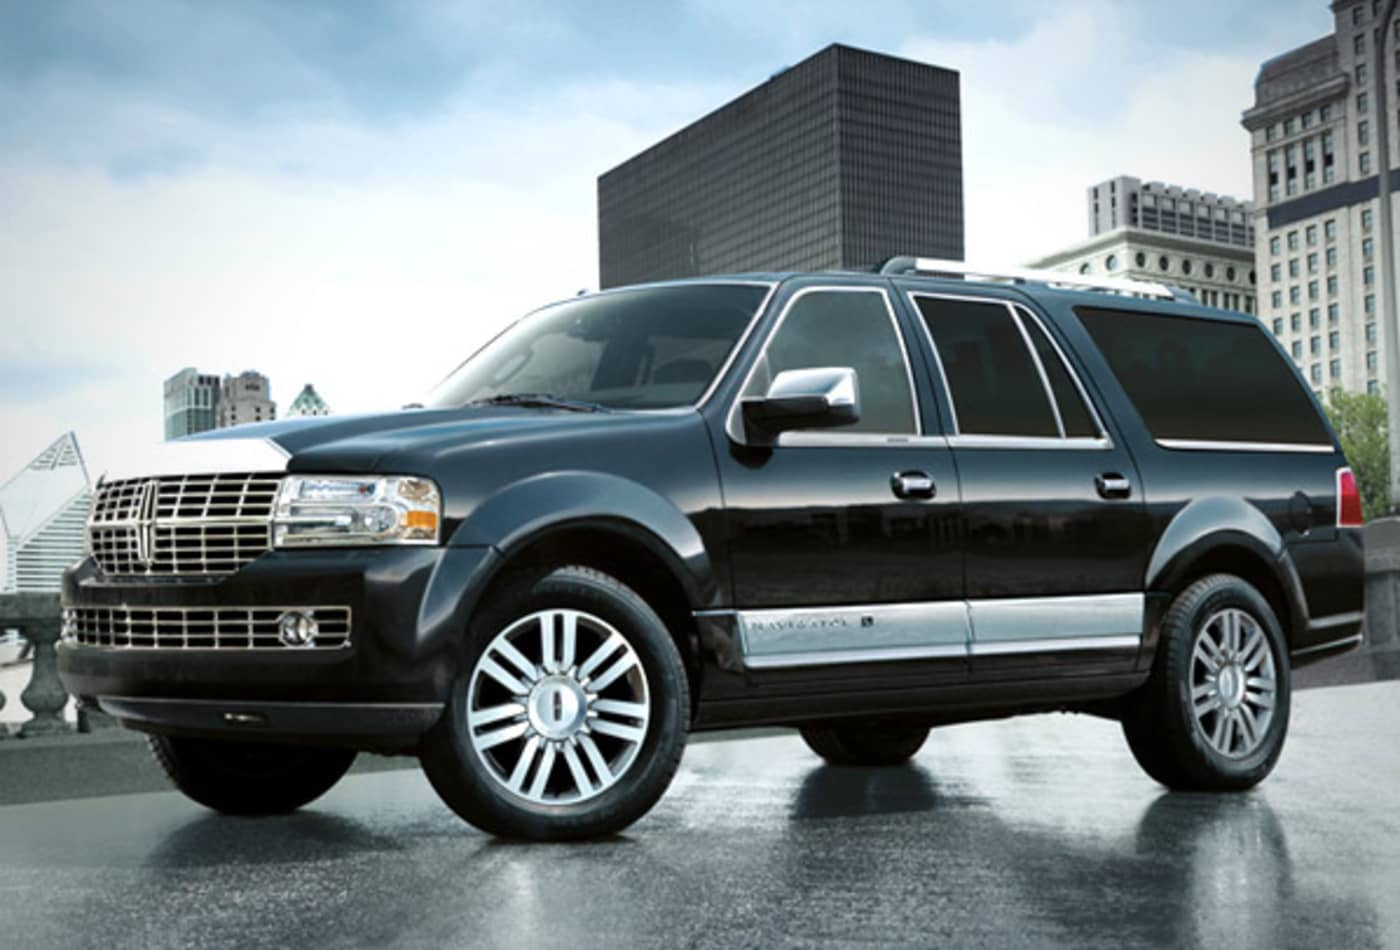 SS_Biggest_Gas_Guzzlers_Lincoln_Navigator.jpg